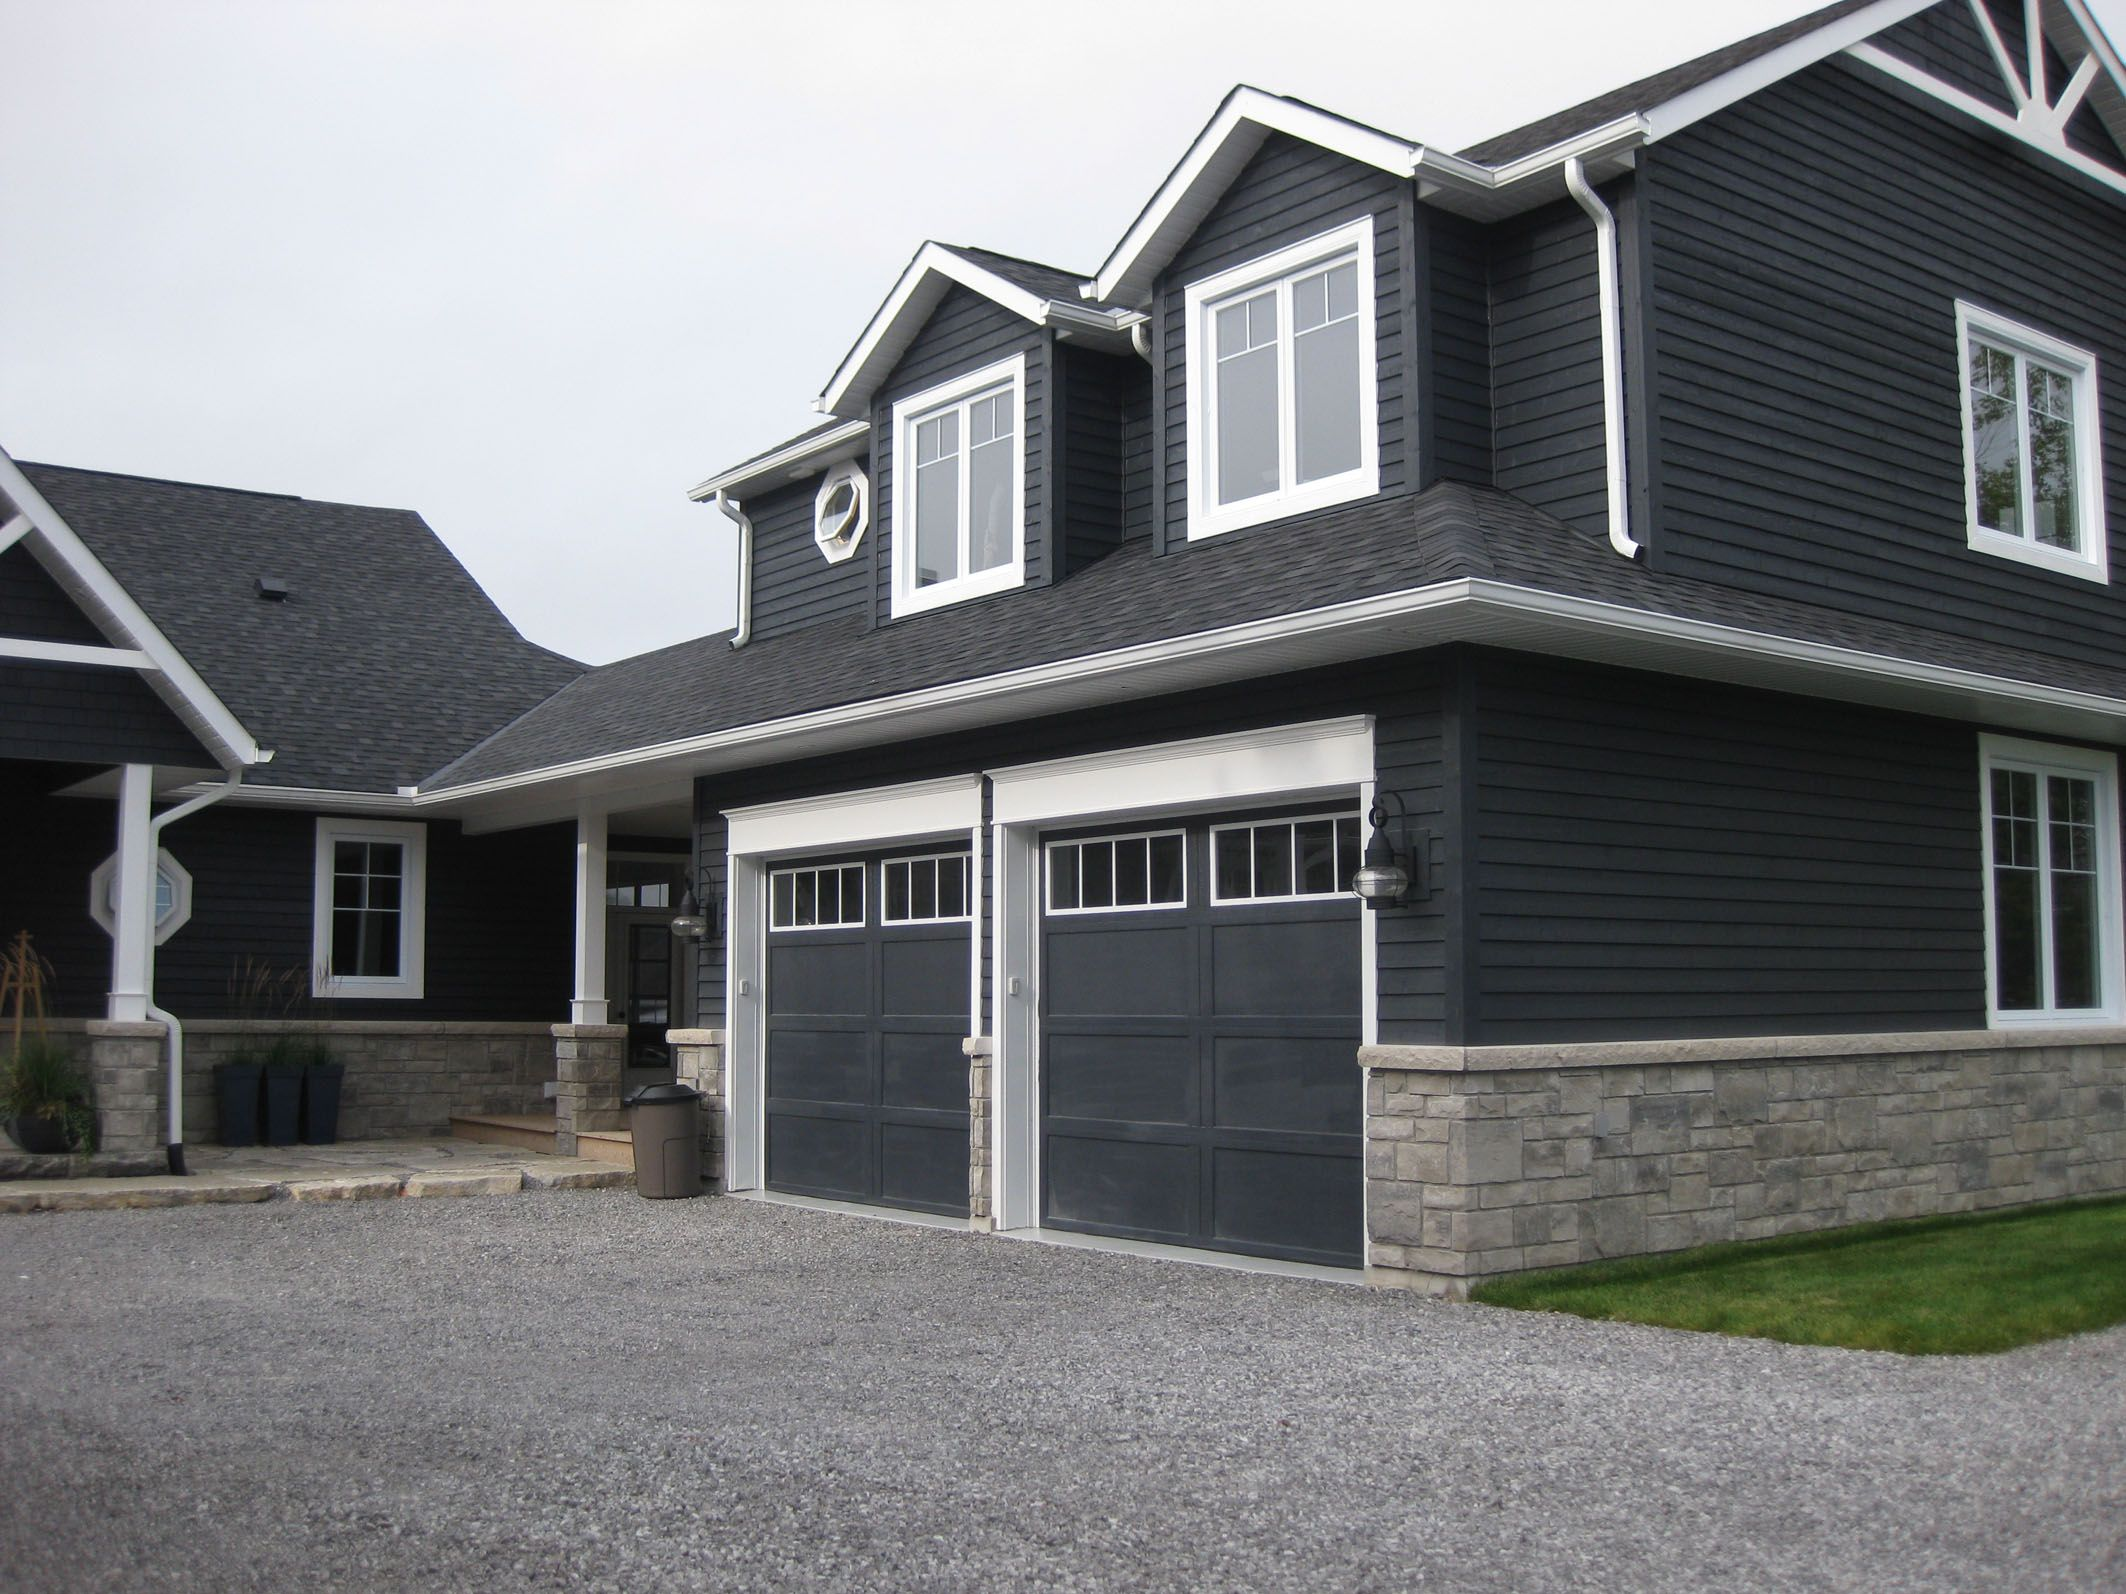 30 modern exterior paint colors for houses exterior on modern house designs siding that look amazing id=77595